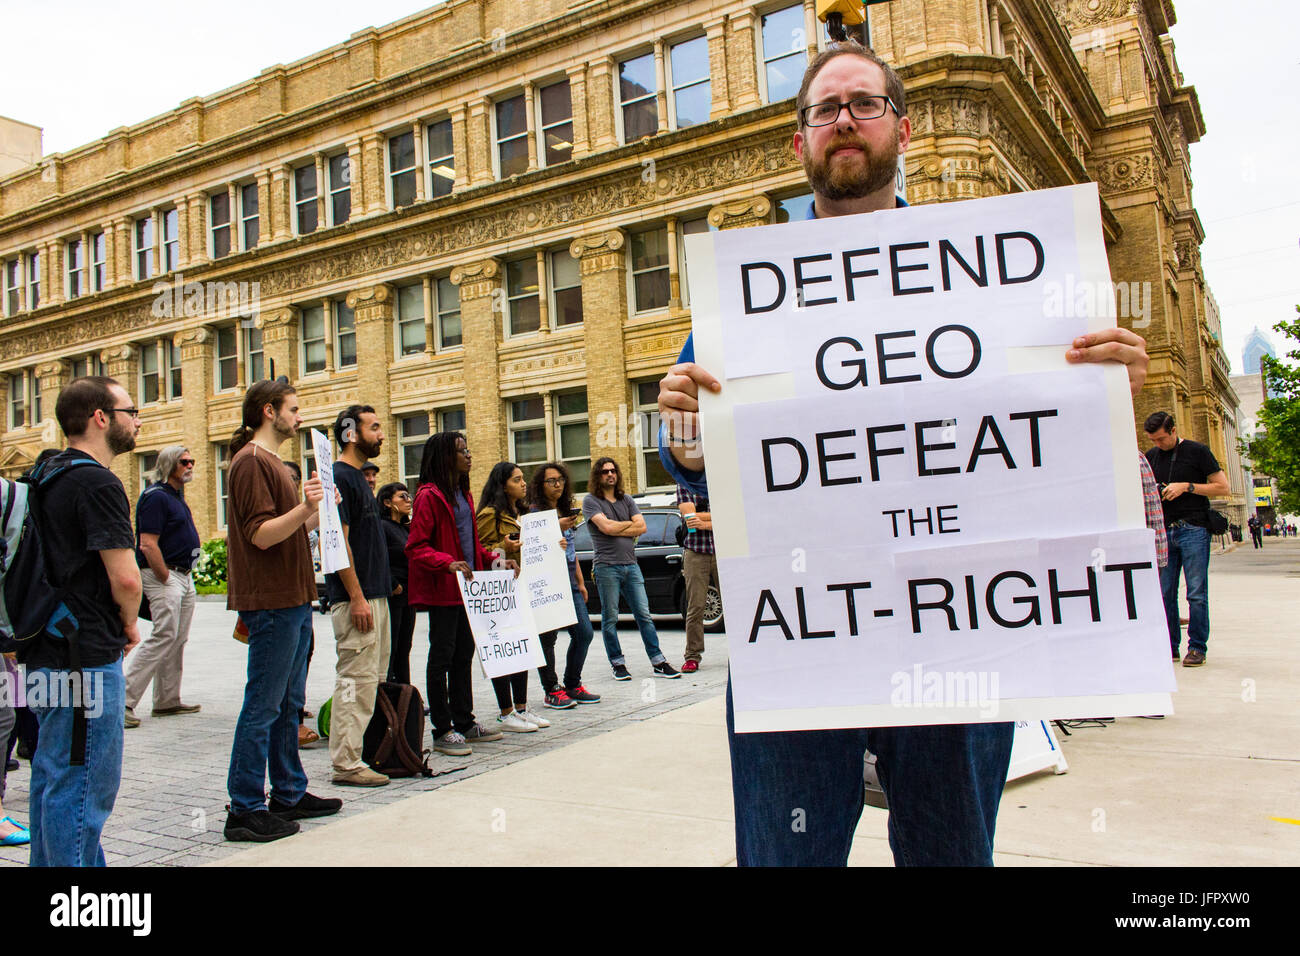 Rob Zilitor, alumnus and veteran, holds a sign during a protest outside Drexell's Randell Hall. Photography - Stock Image